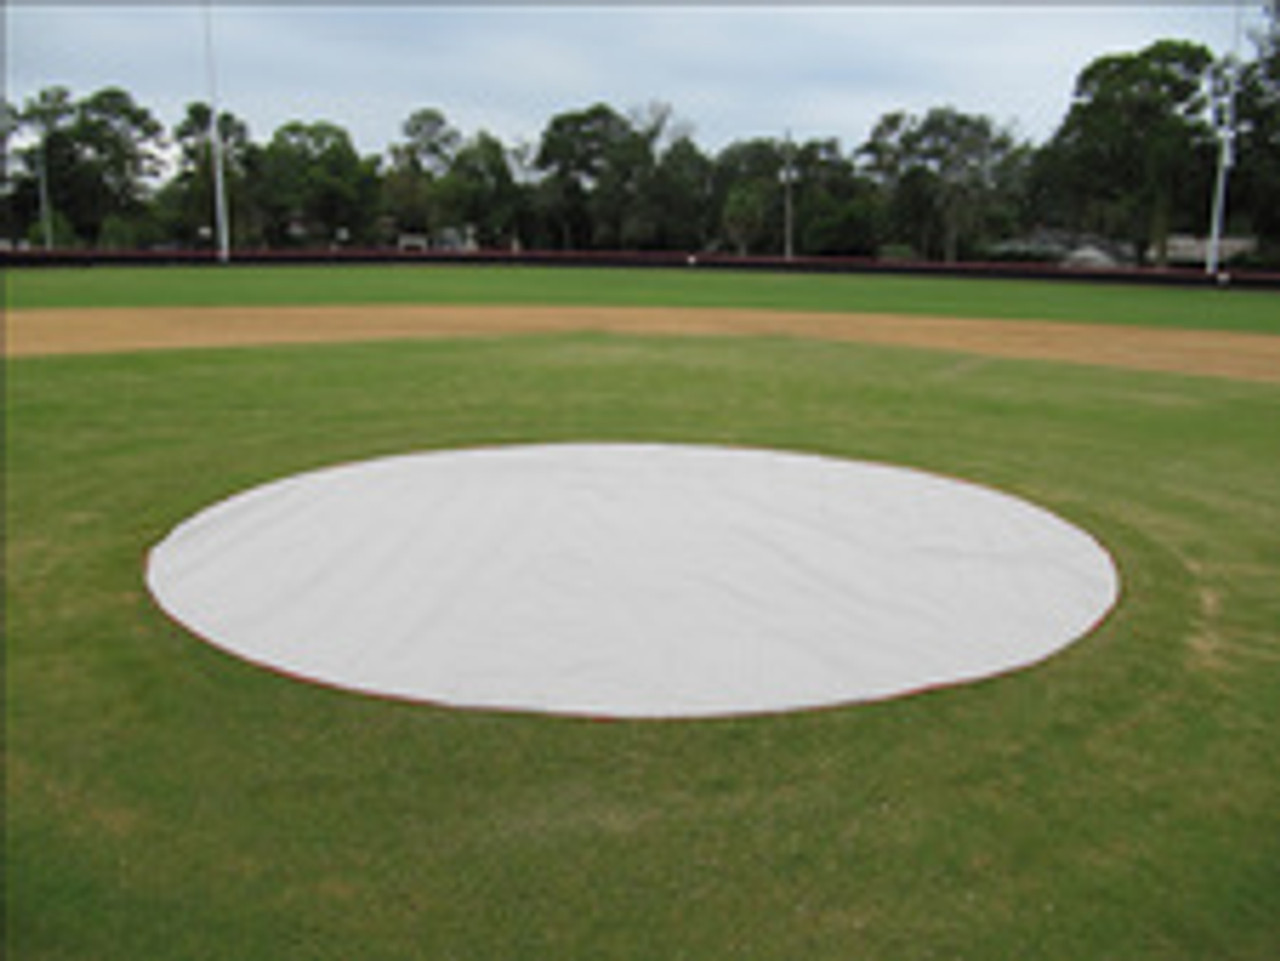 Weighted 6 oz. 26' Diameter Mound & Base Protector - Baseball Field Covers